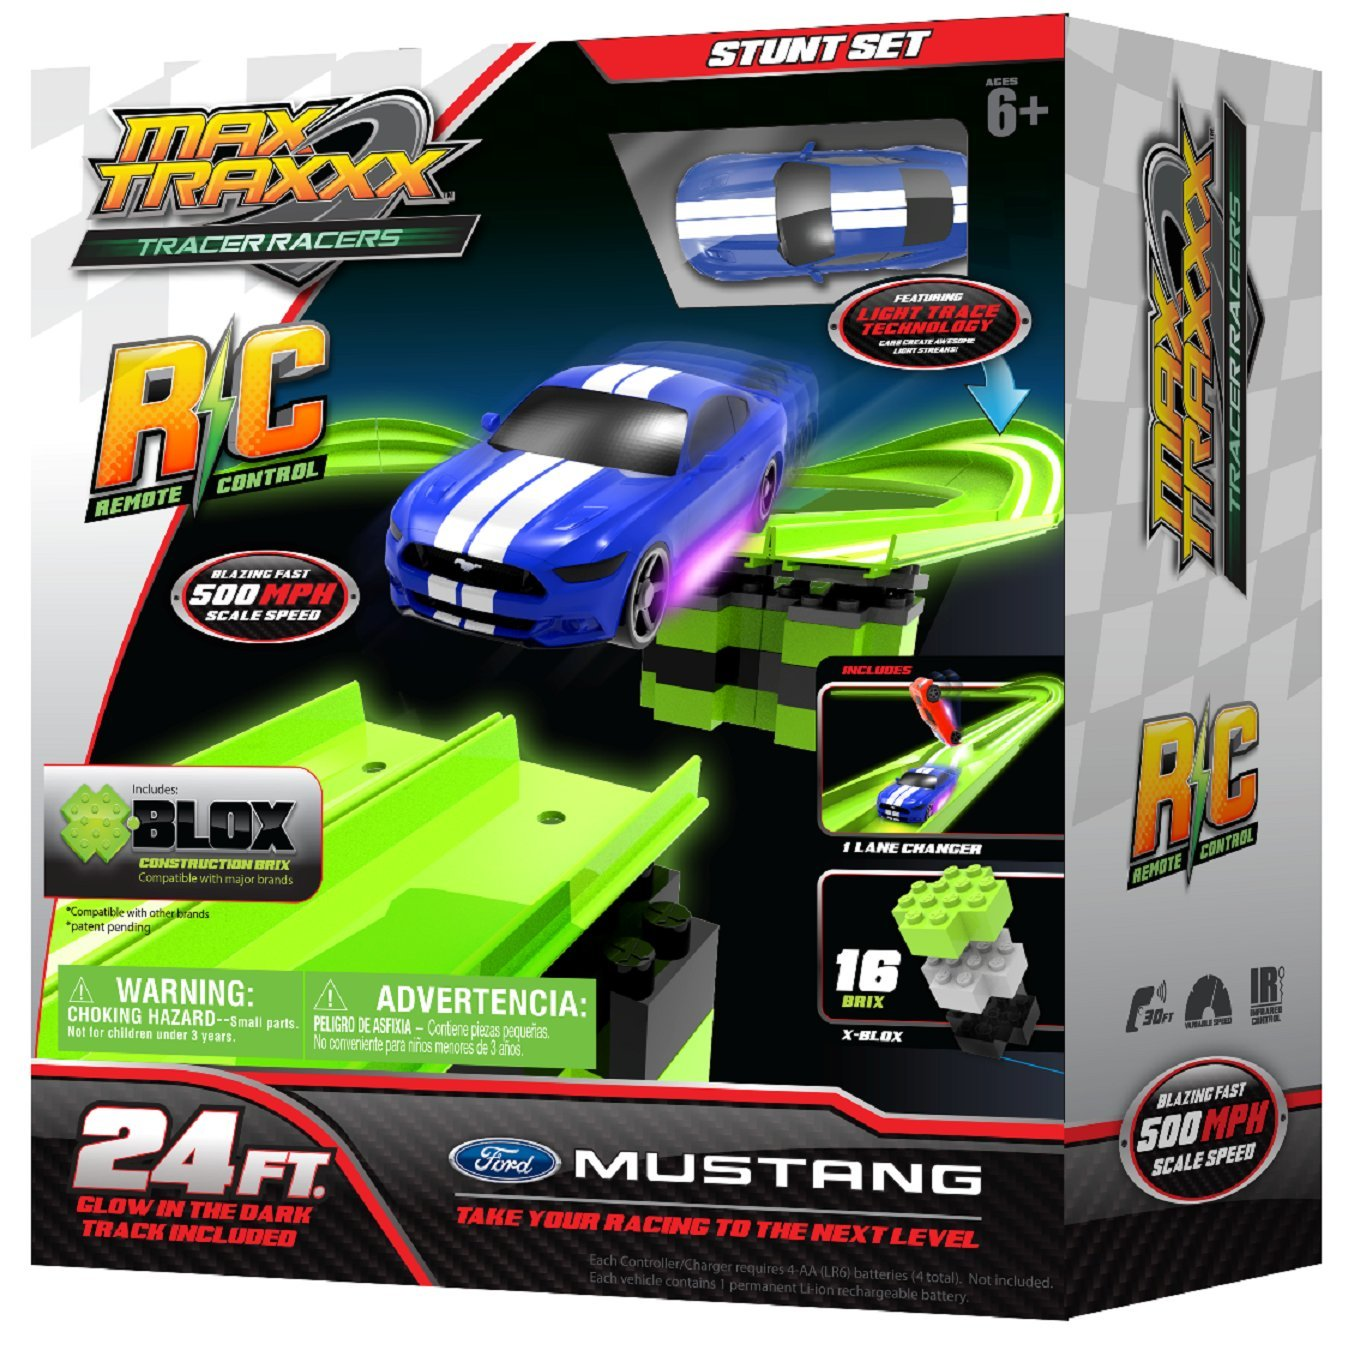 Max Traxxx R/C High Speed Remote Control Stunt Track Set with Officially Licensed 1:64 Scale Ford Mustang Car by Max Traxxx